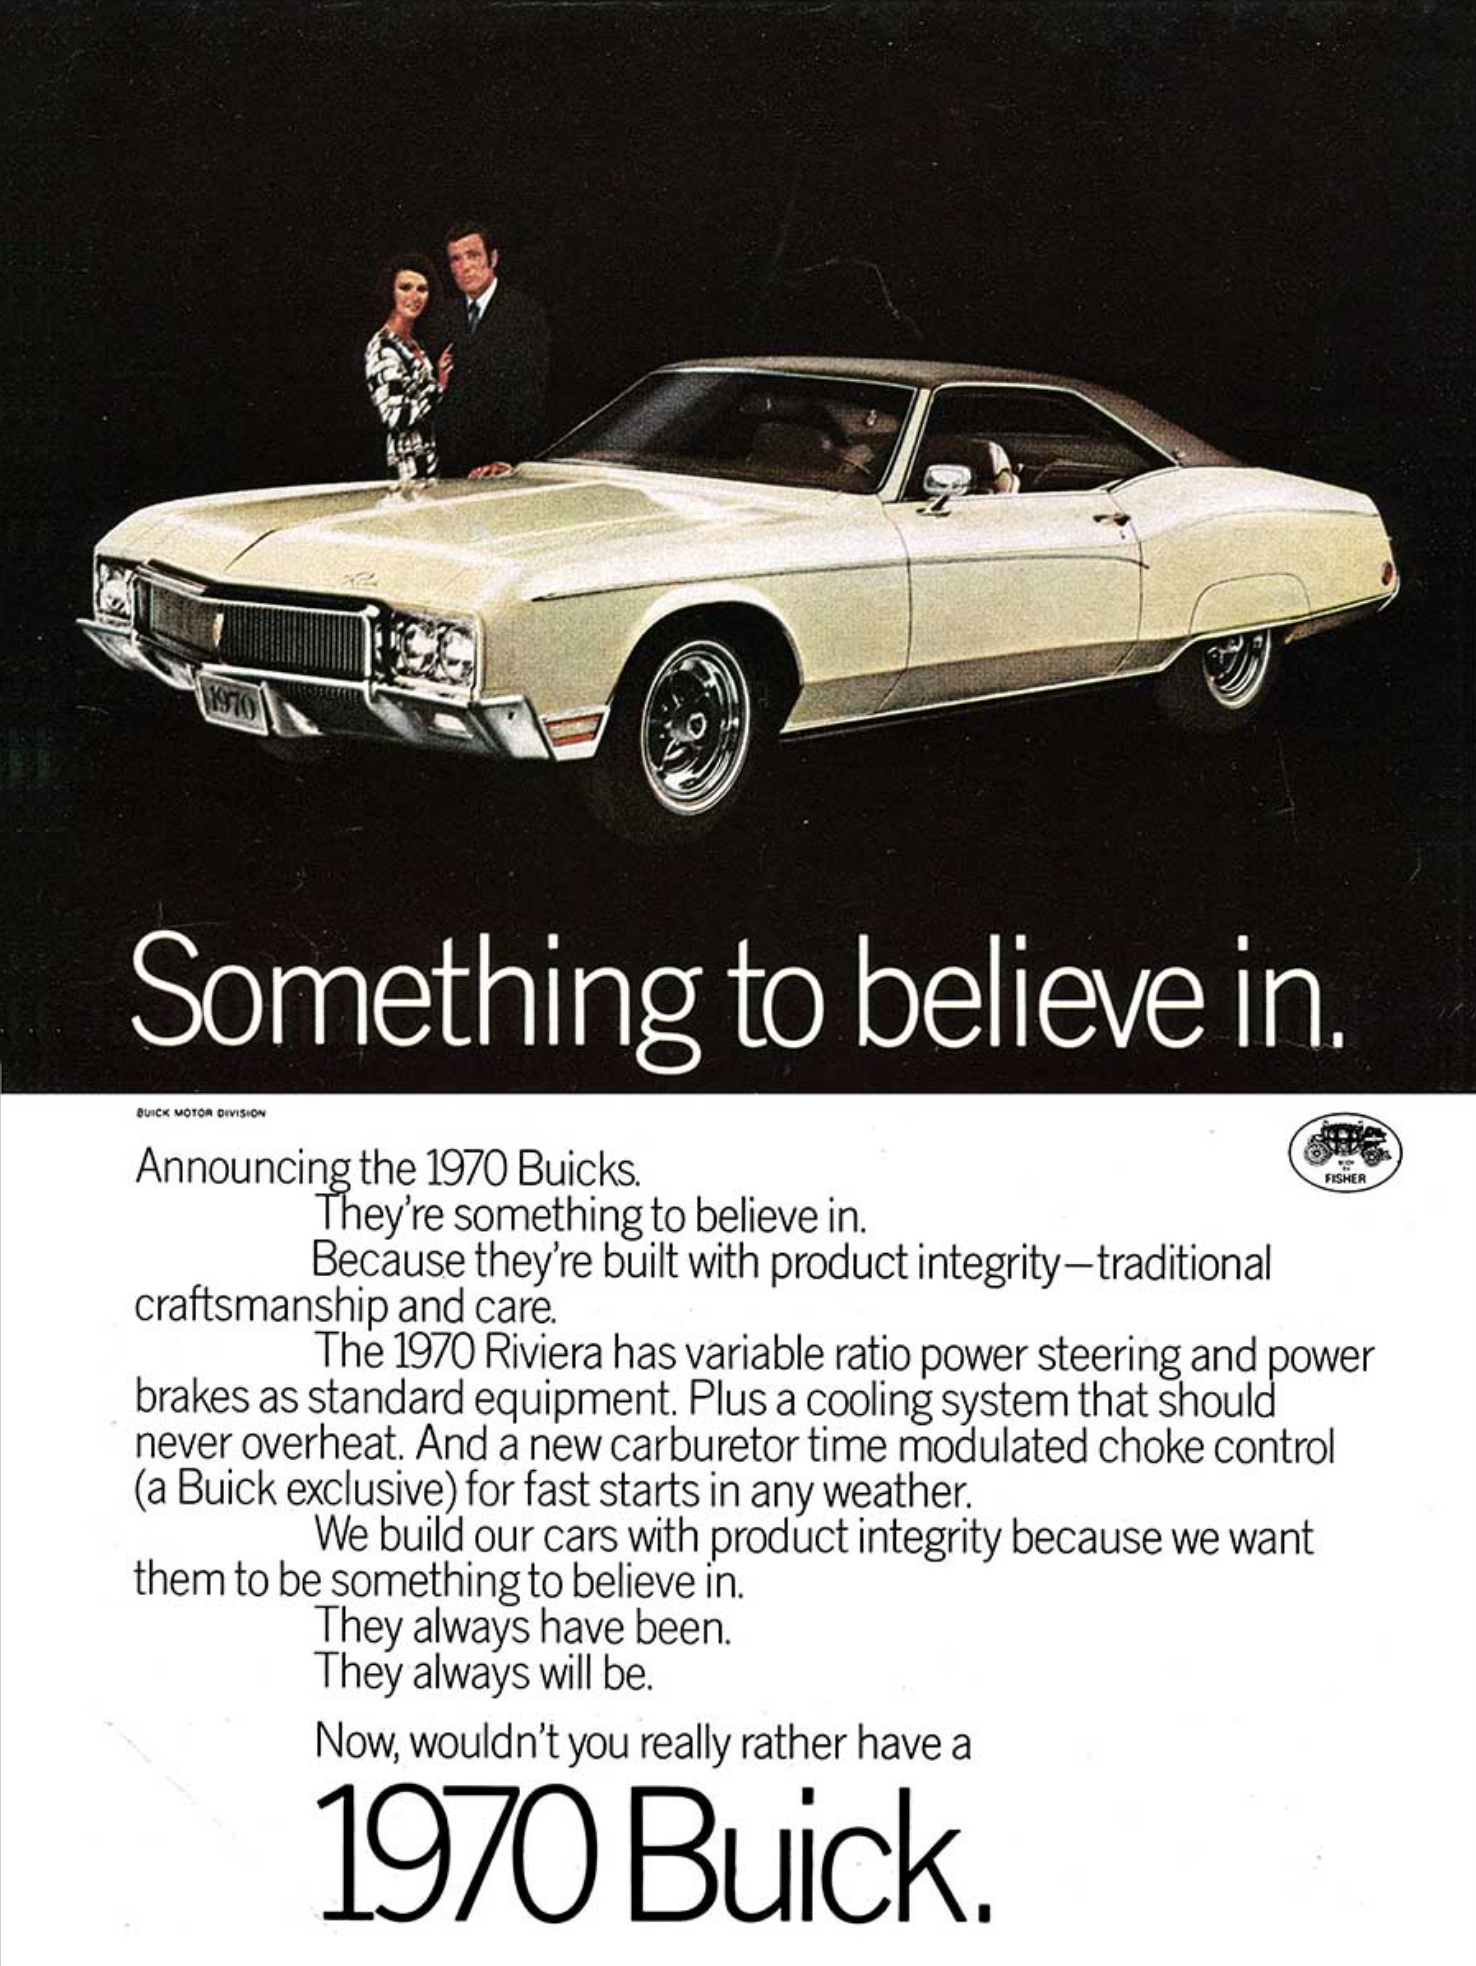 1970 Buick Ad